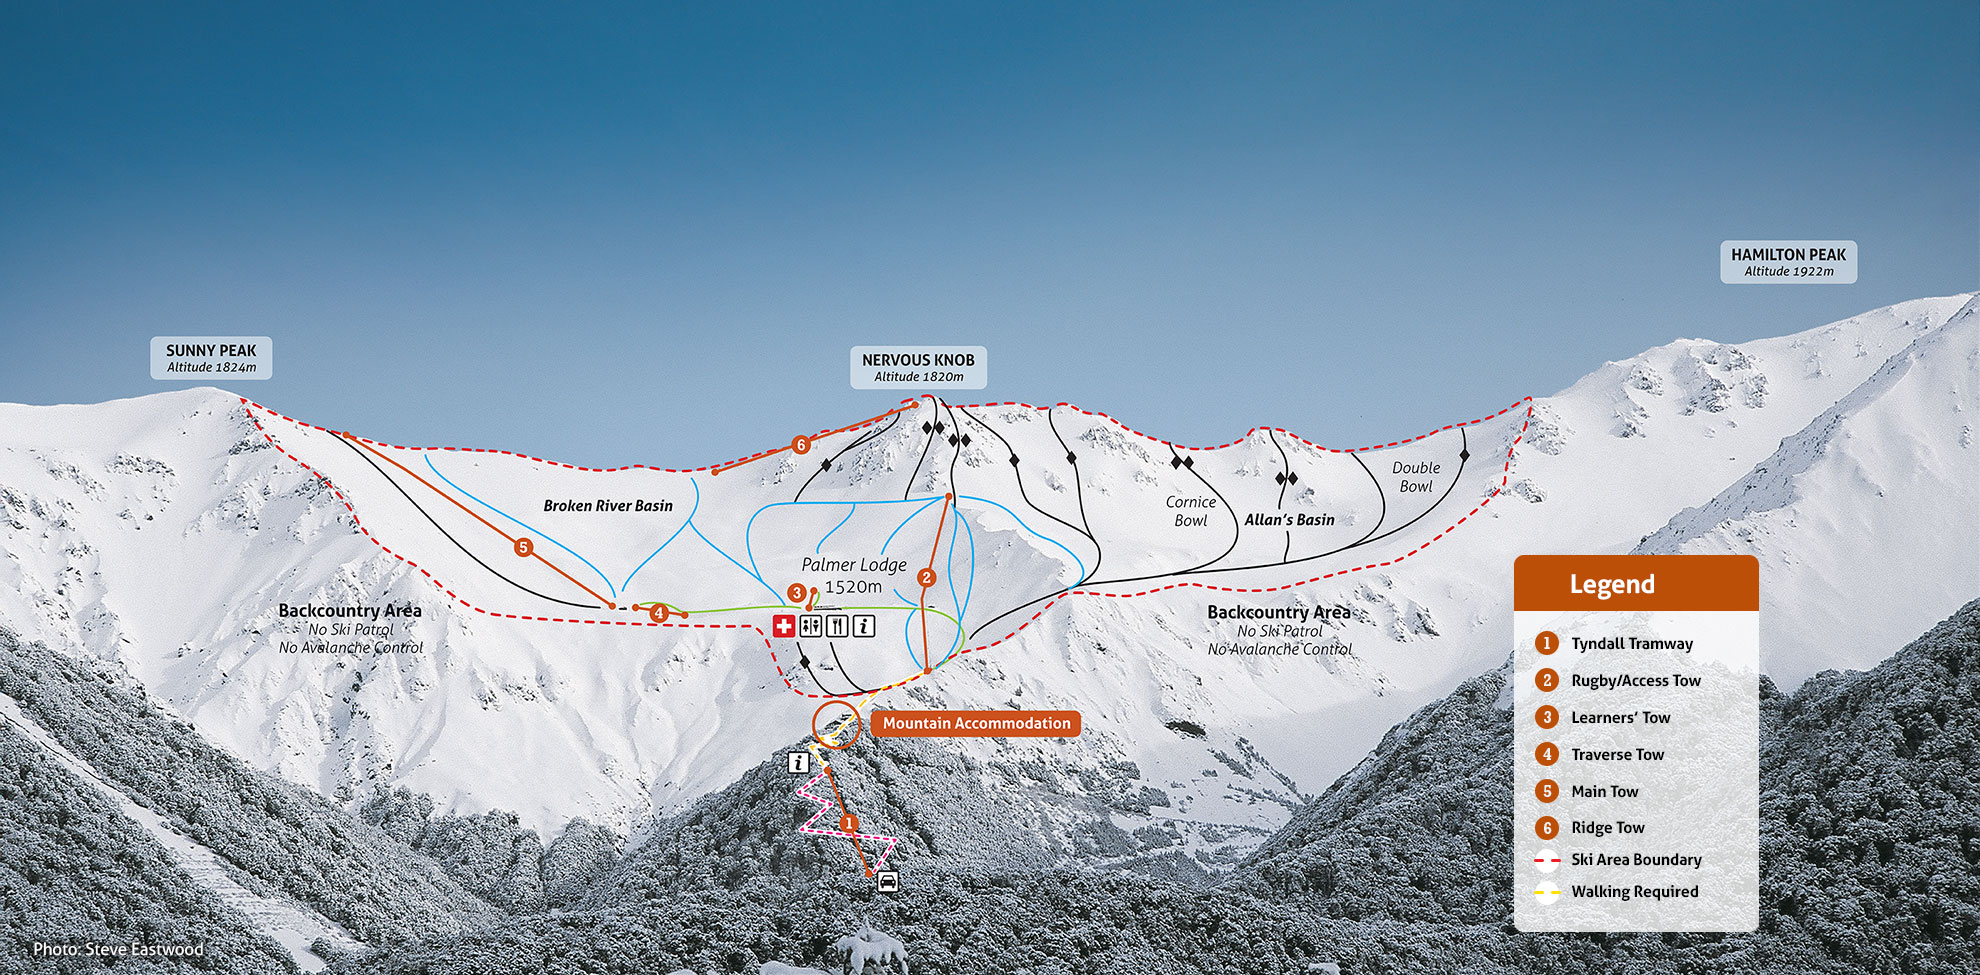 Broken River Piste / Trail Map